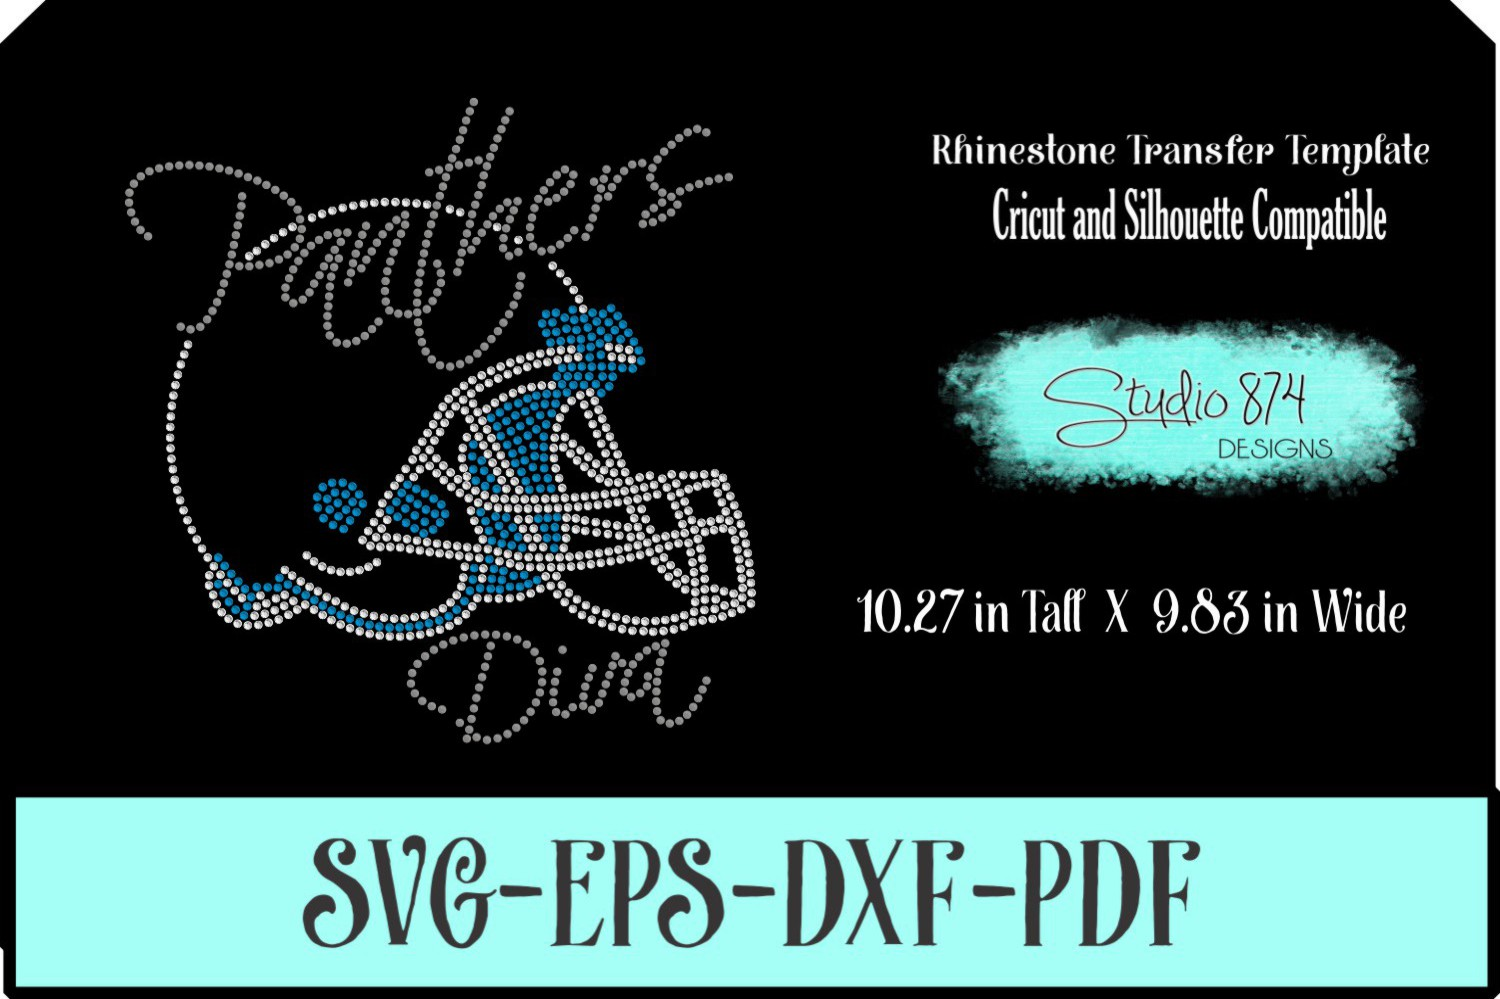 Panthers Football Rhinestone Template Download Diva R1 example image 1